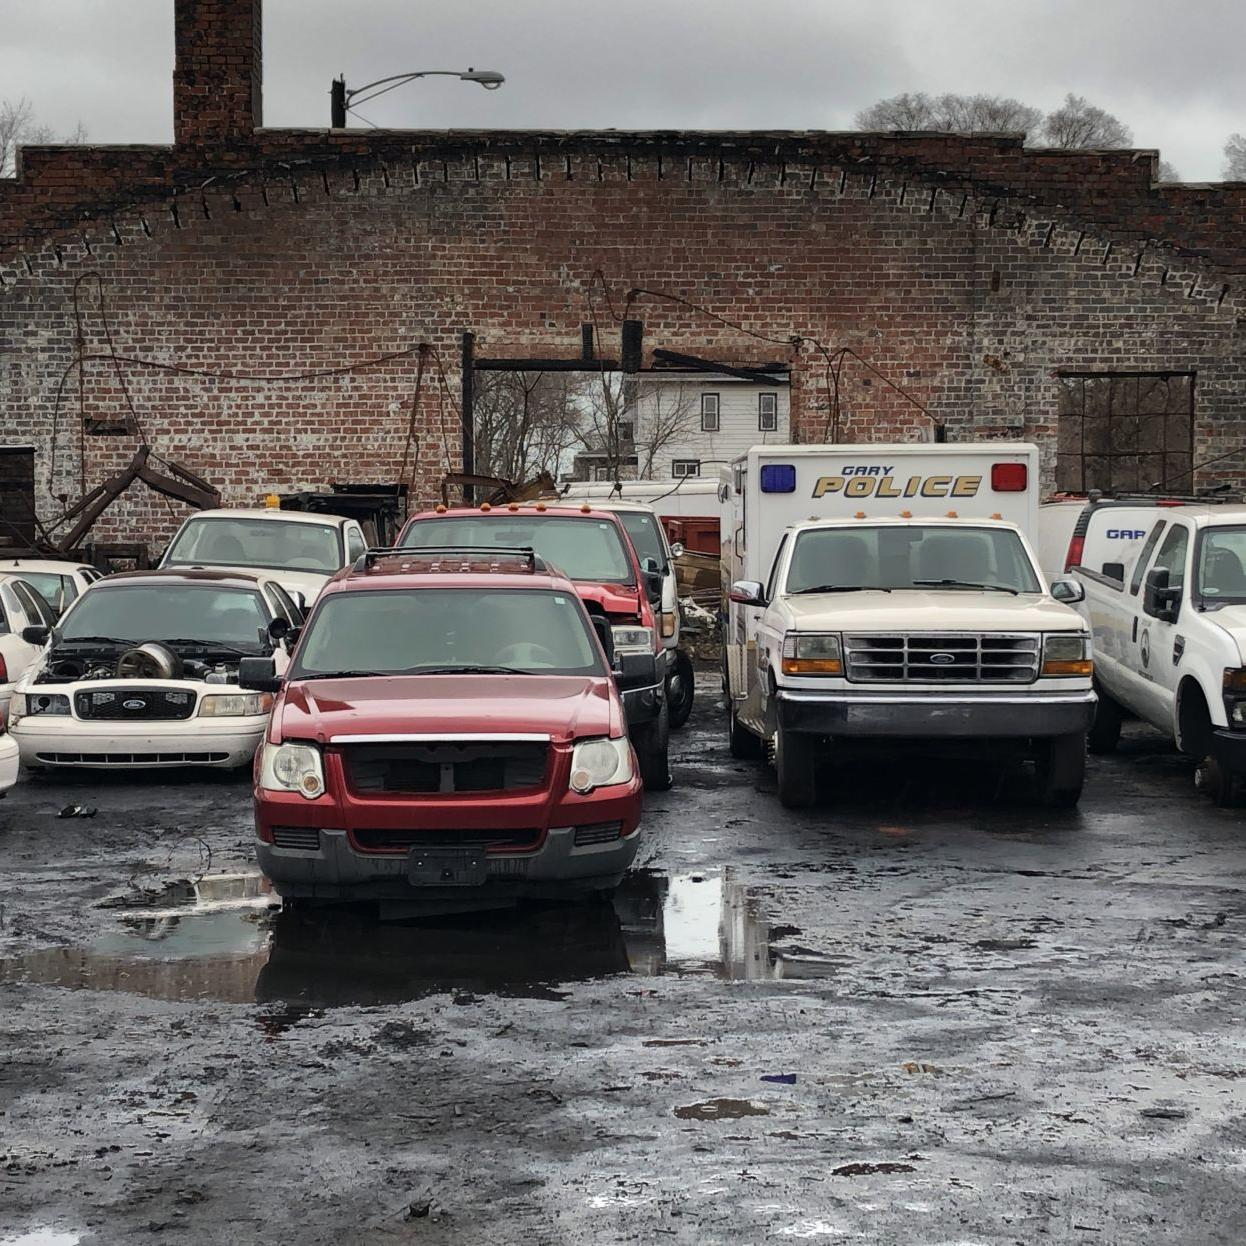 Police Car Auctions Near Me >> Gary Moves To Clean Up Old Cop Car Mess With Public Auction